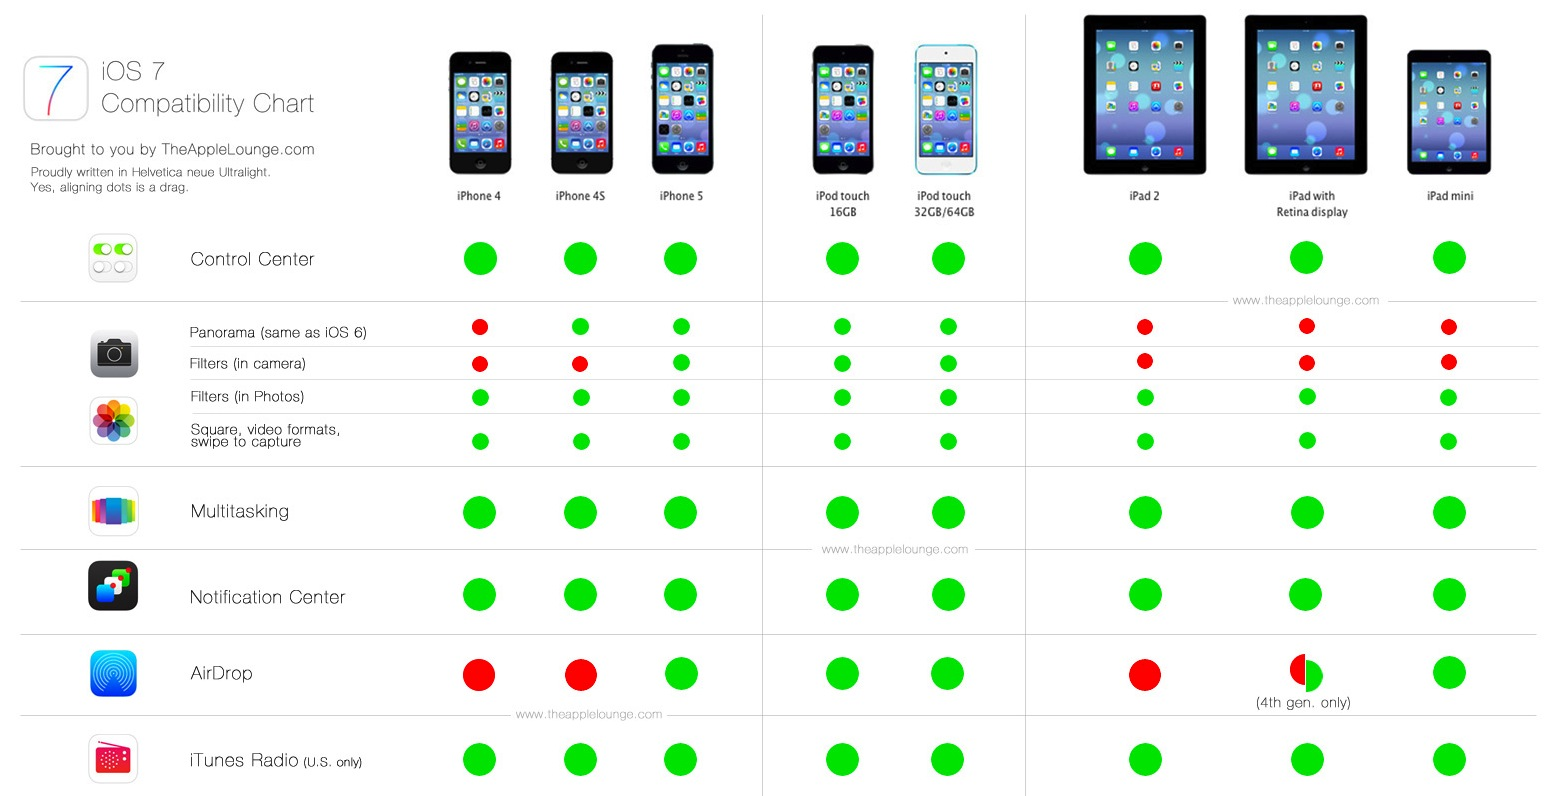 iOS 7, compatibilidad de dispositivos